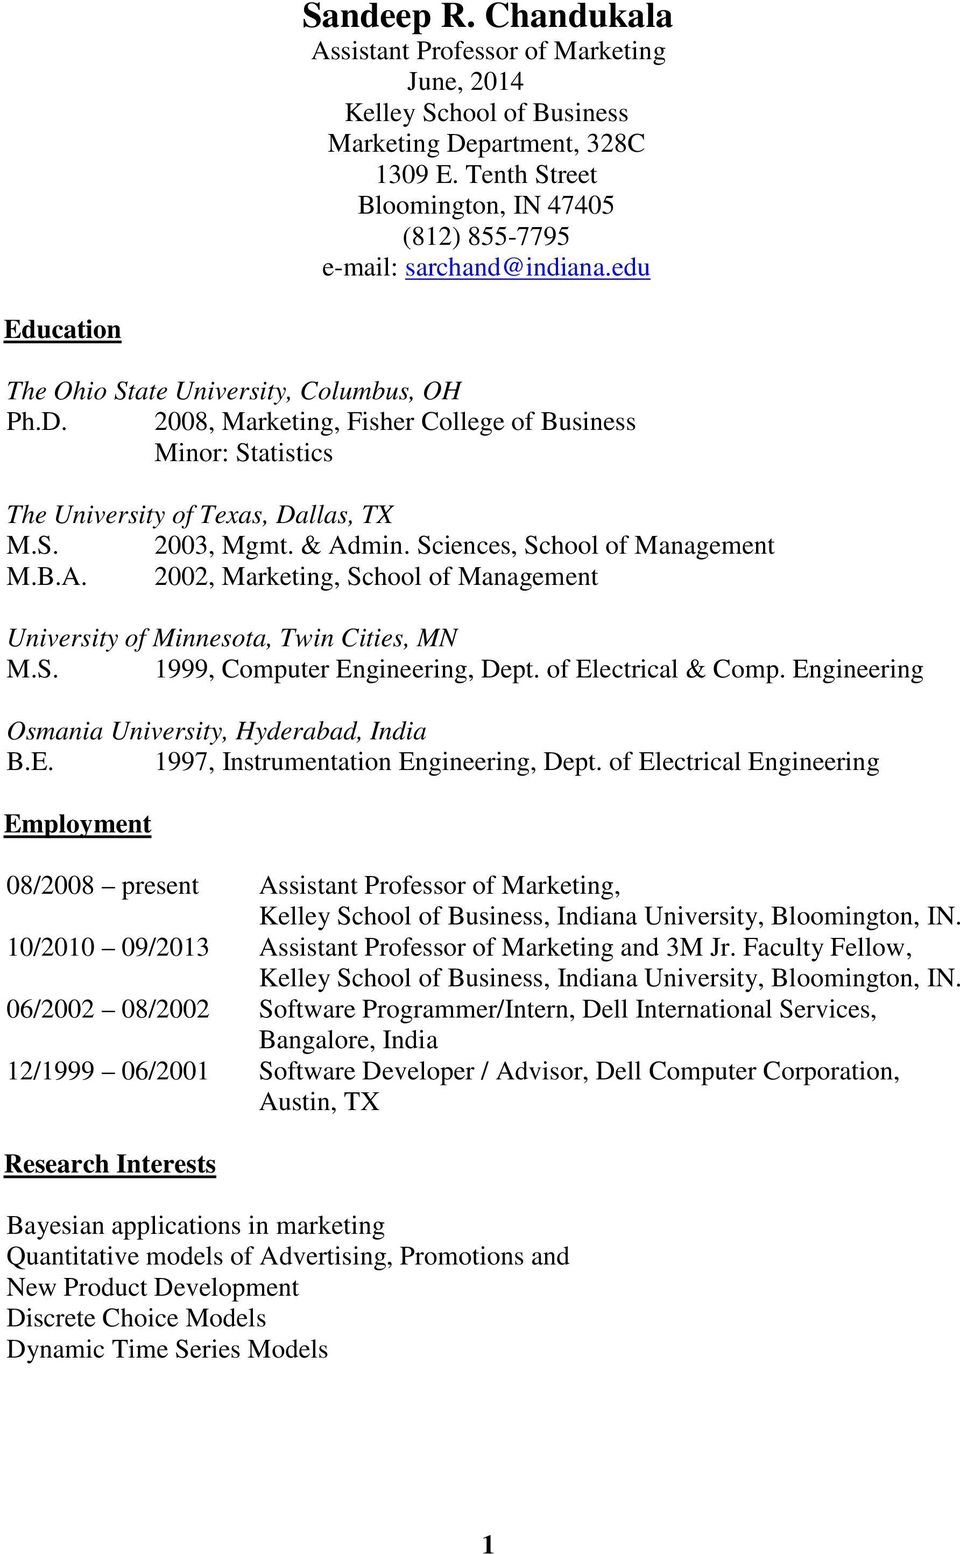 2008, Marketing, Fisher College of Business Minor: Statistics The University of Texas, Dallas, TX M.S. 2003, Mgmt. & Ad